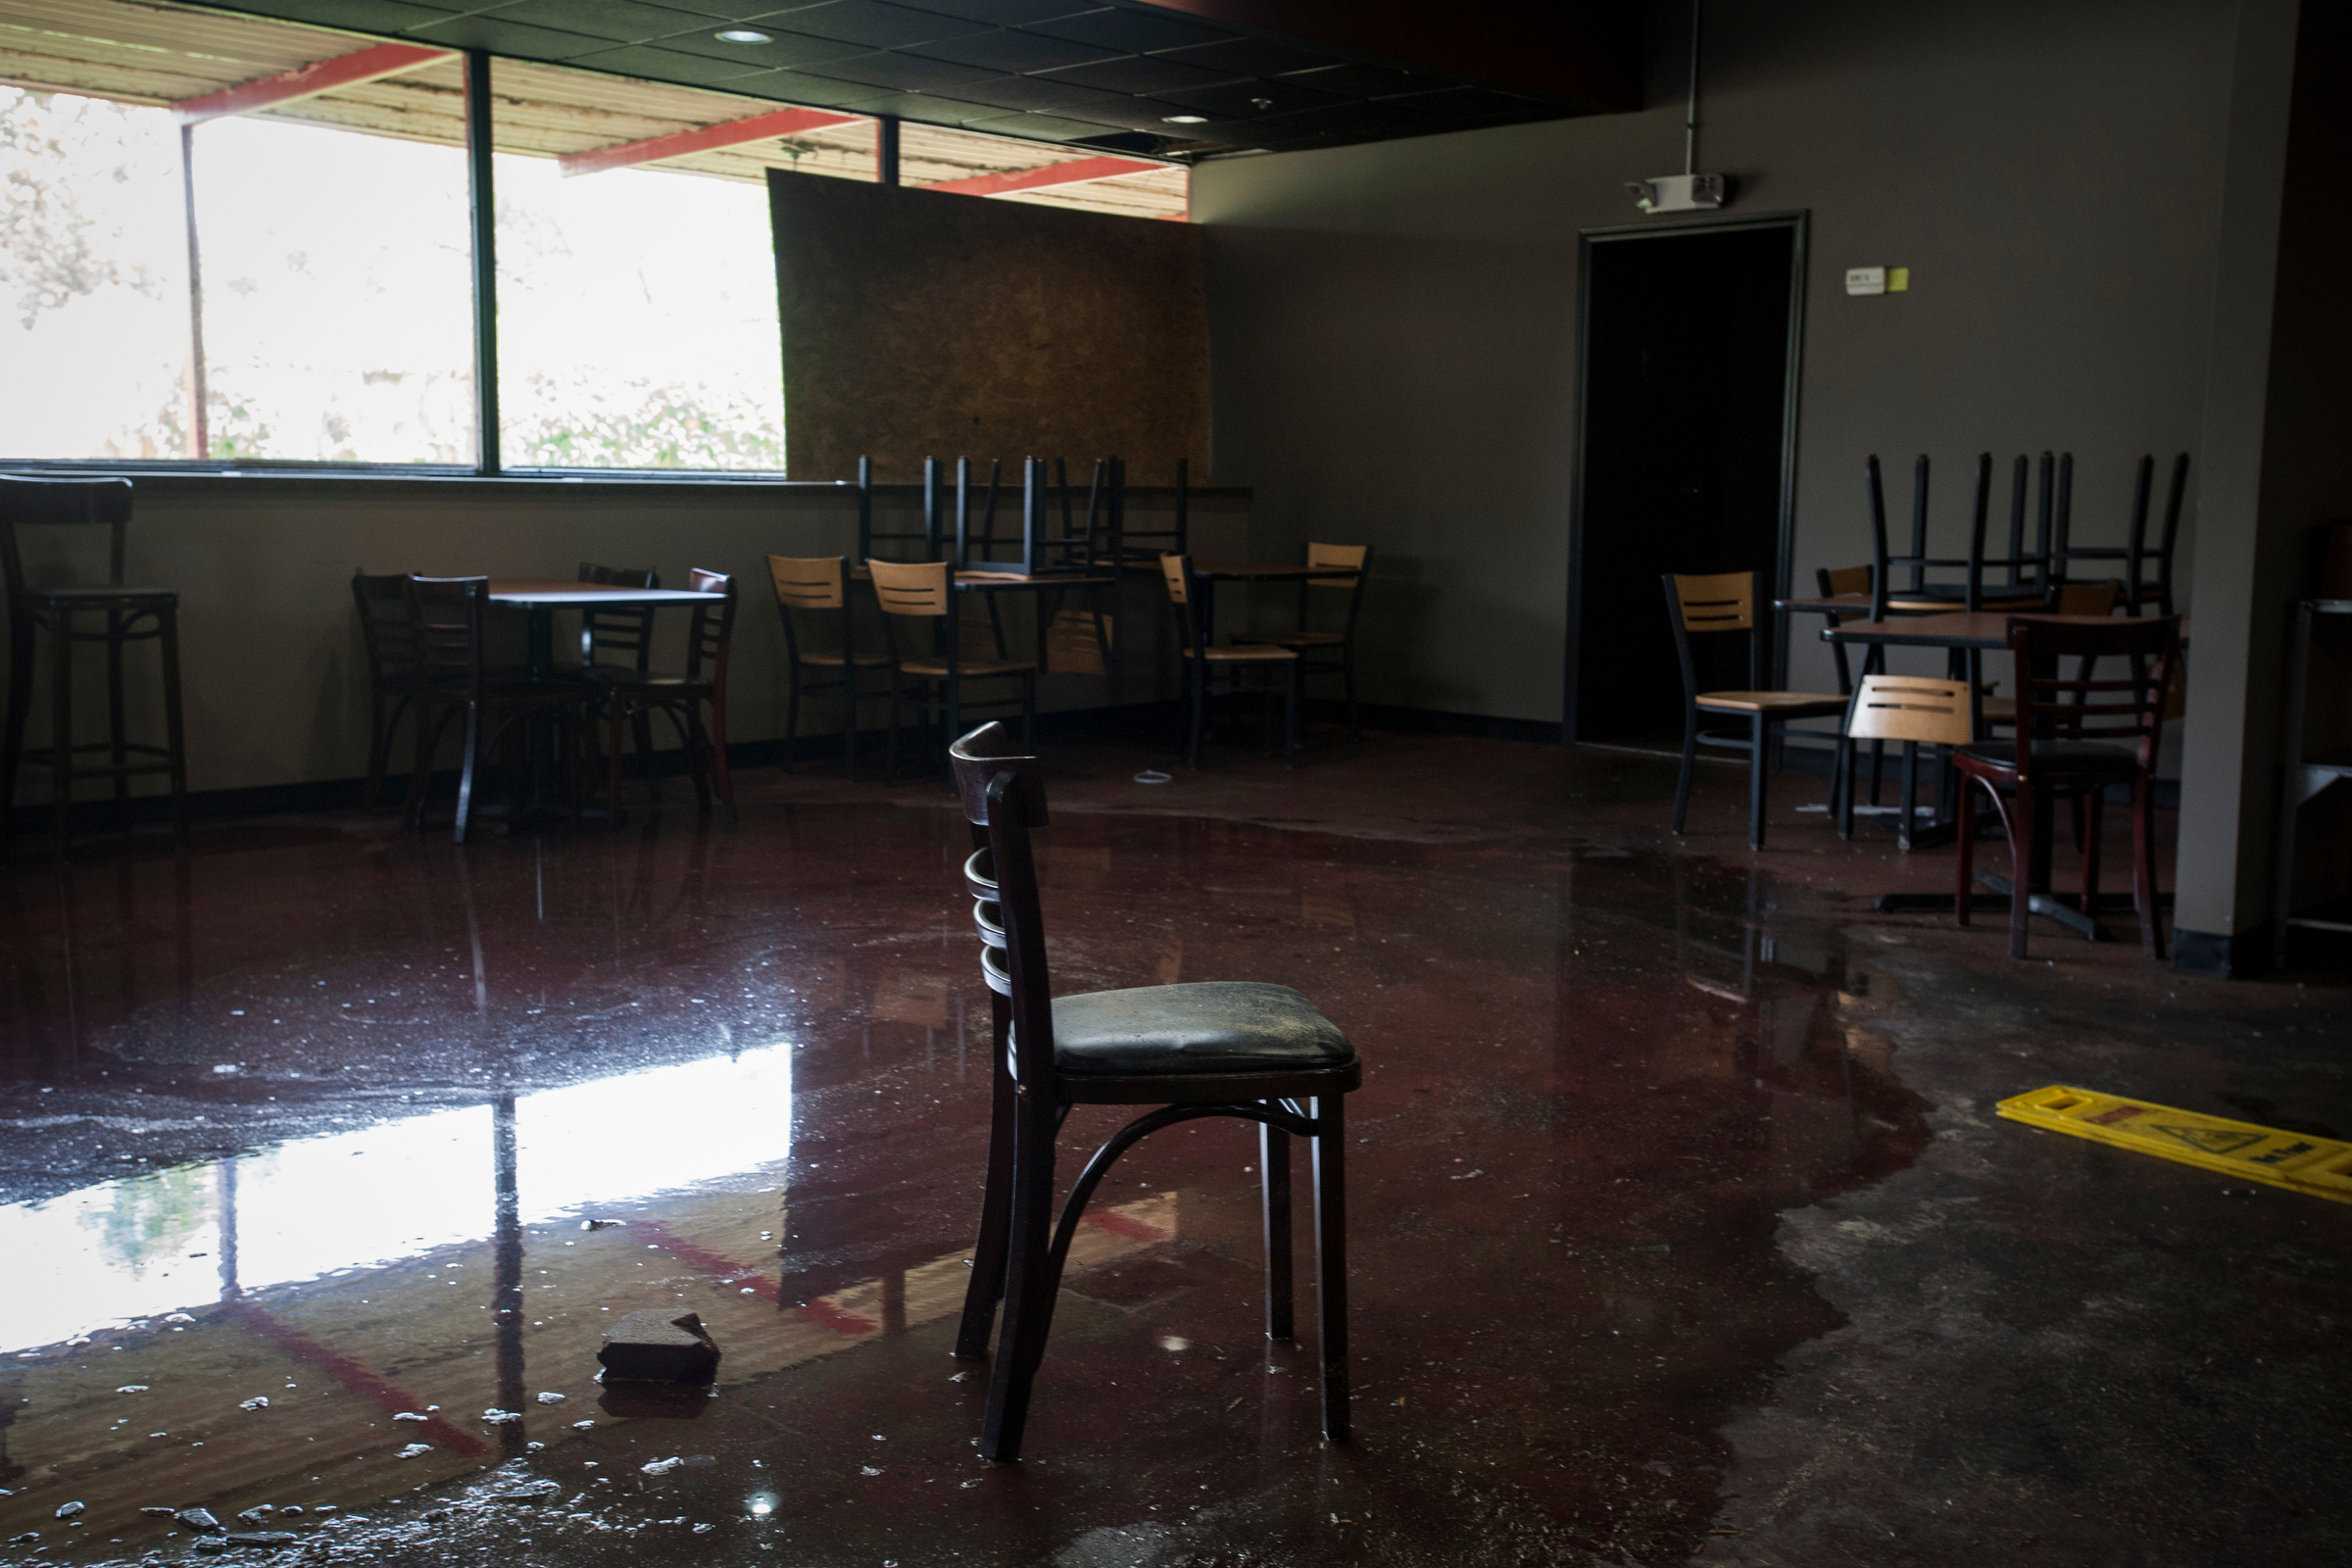 A partially-burned chair sits in a pool of water caused by a sprinkler system that prevented the total distraction of a local restaurant after it was looted and set on fire.